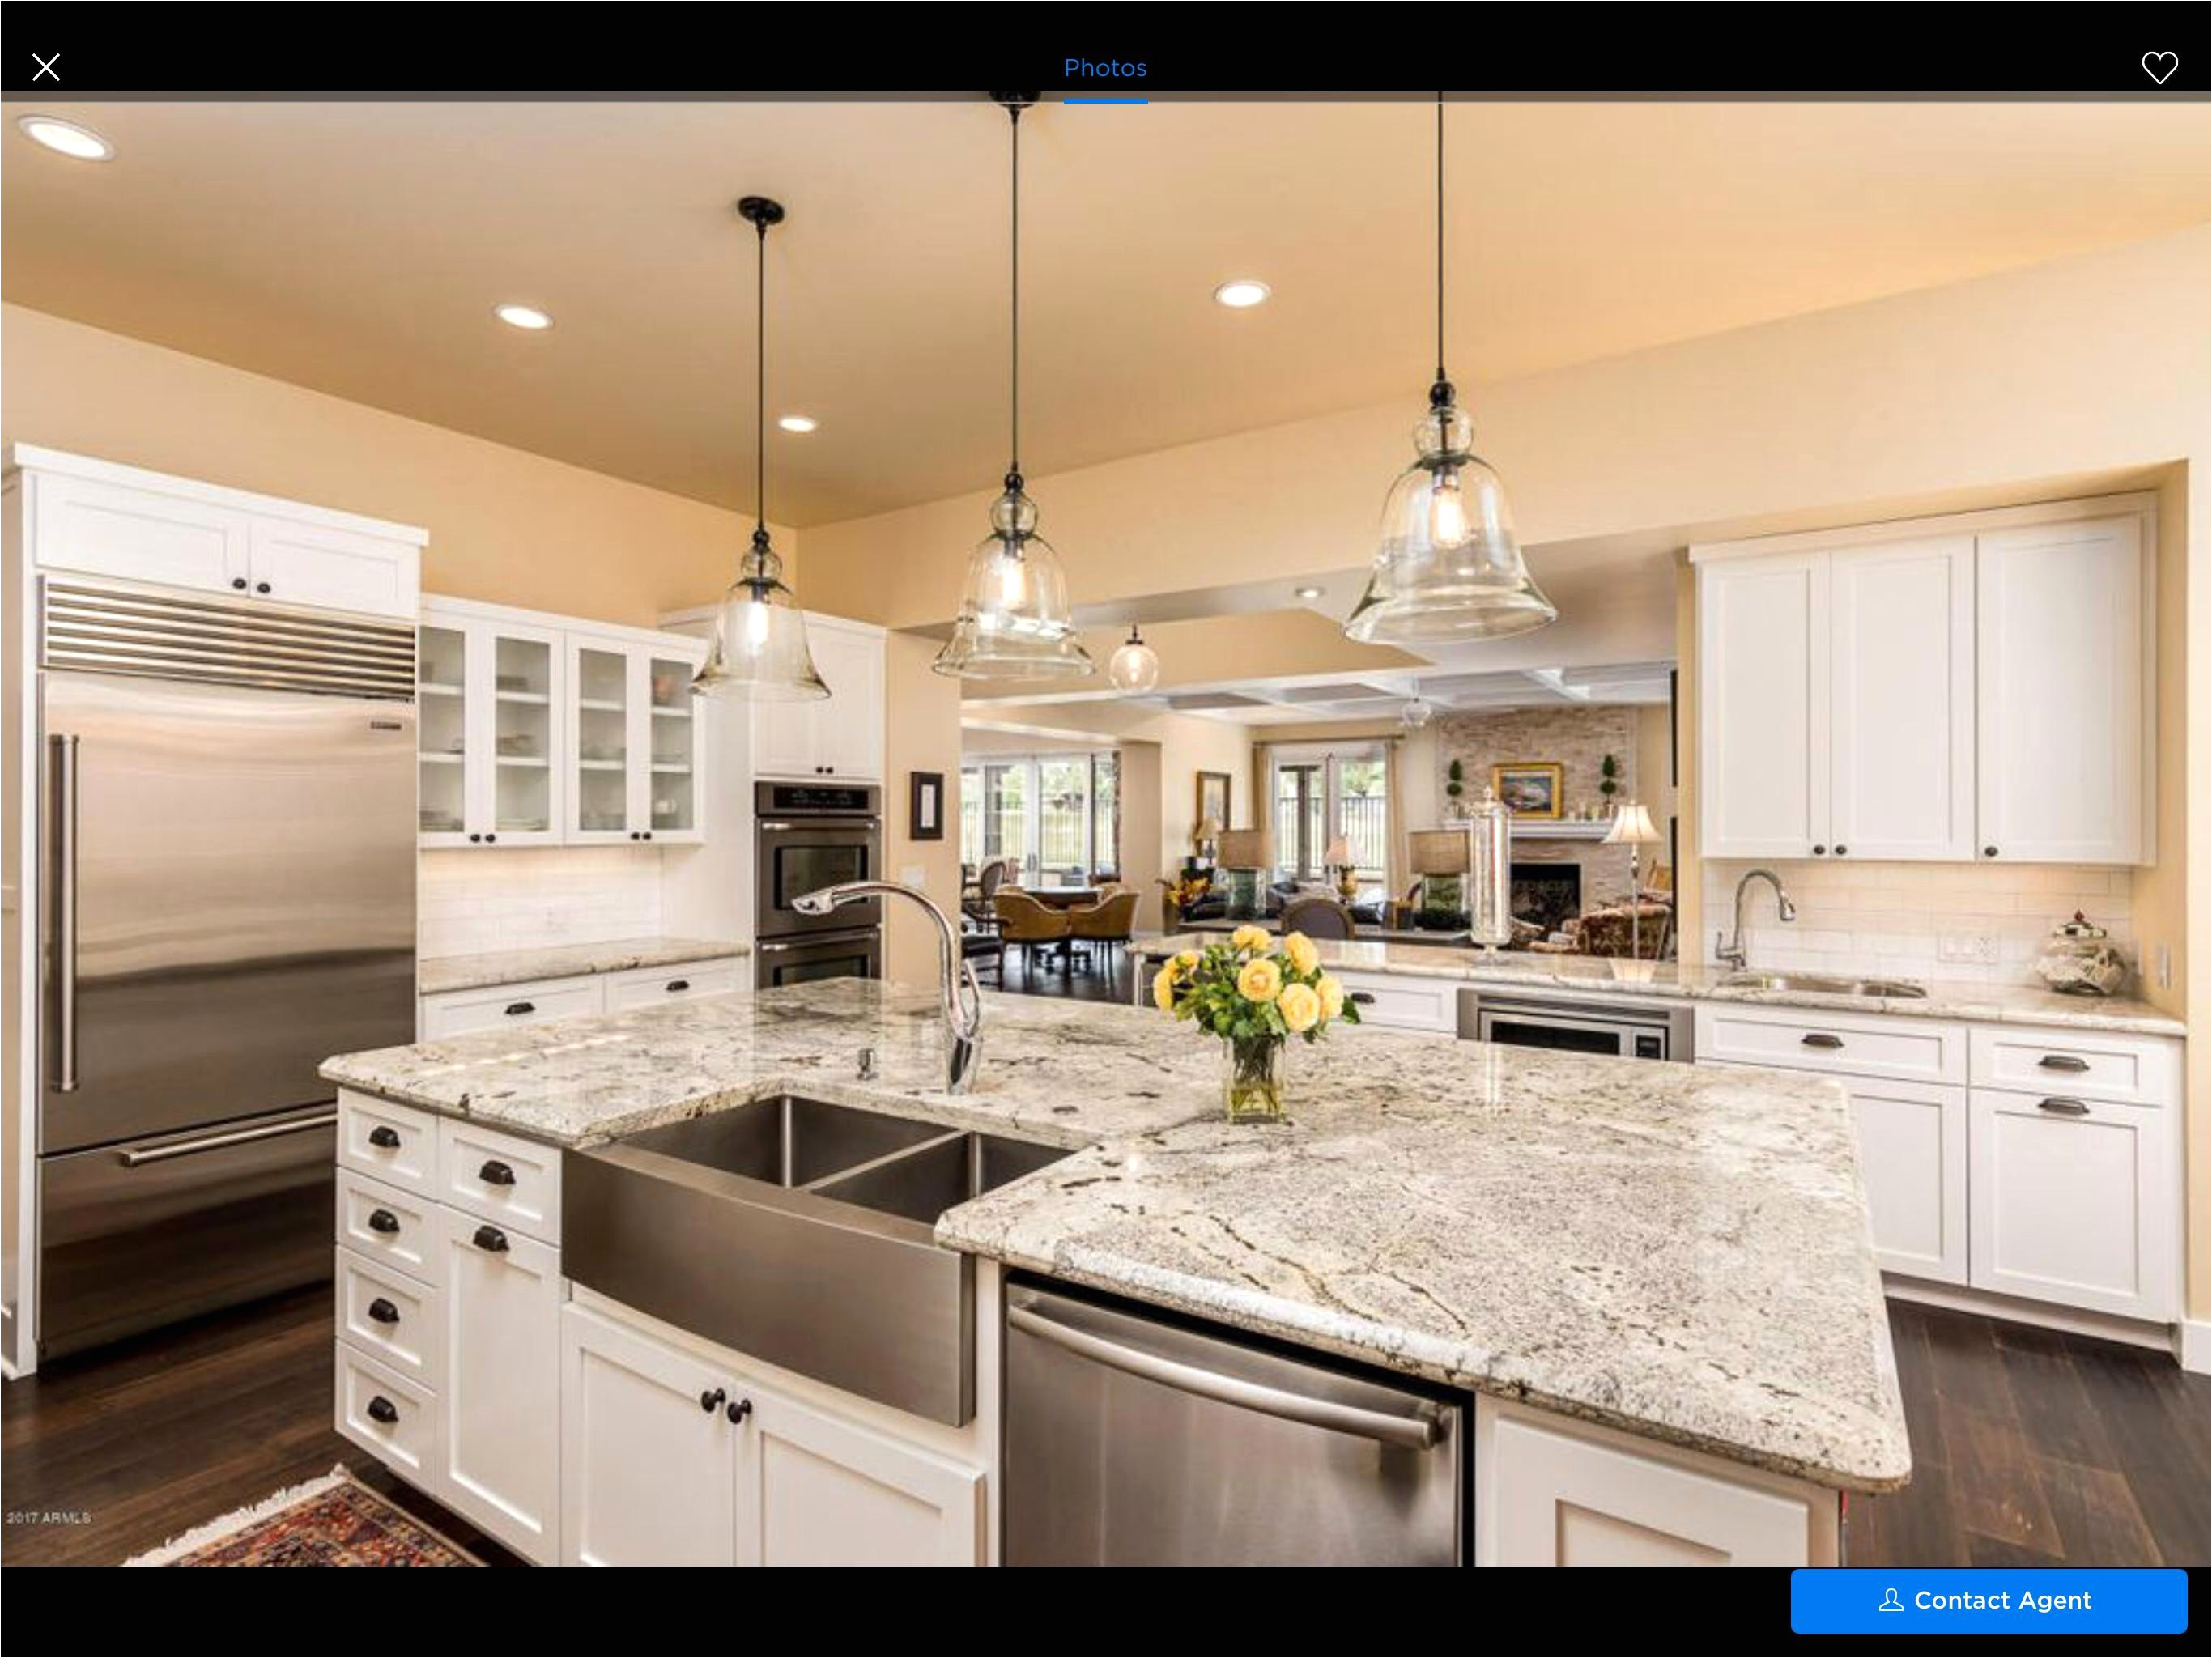 crackle paint home depot from home depot hampton bay kitchen cabinets image source advanced environments com